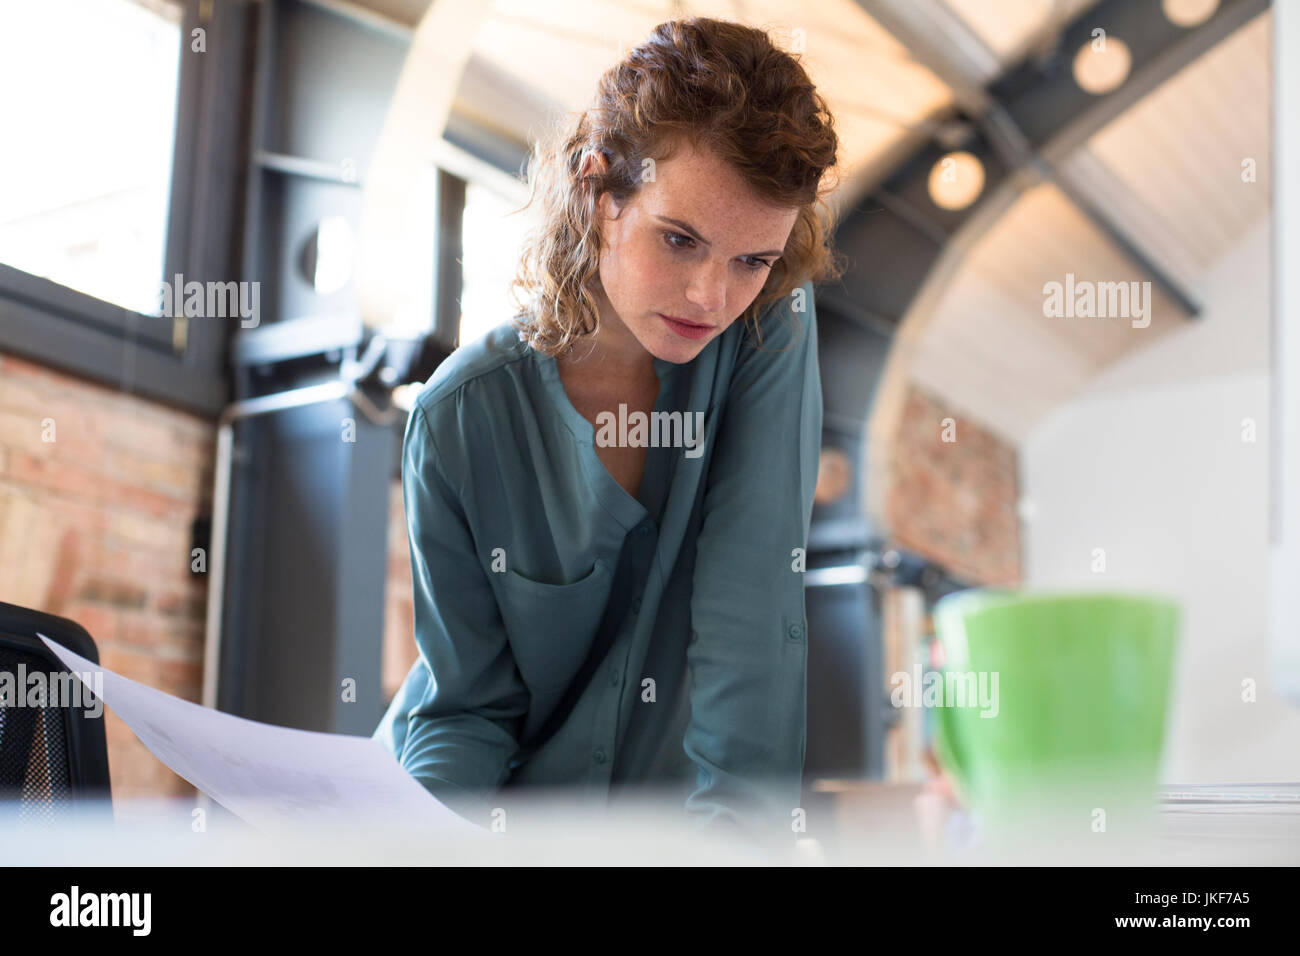 Young woman working at desk in modern office - Stock Image